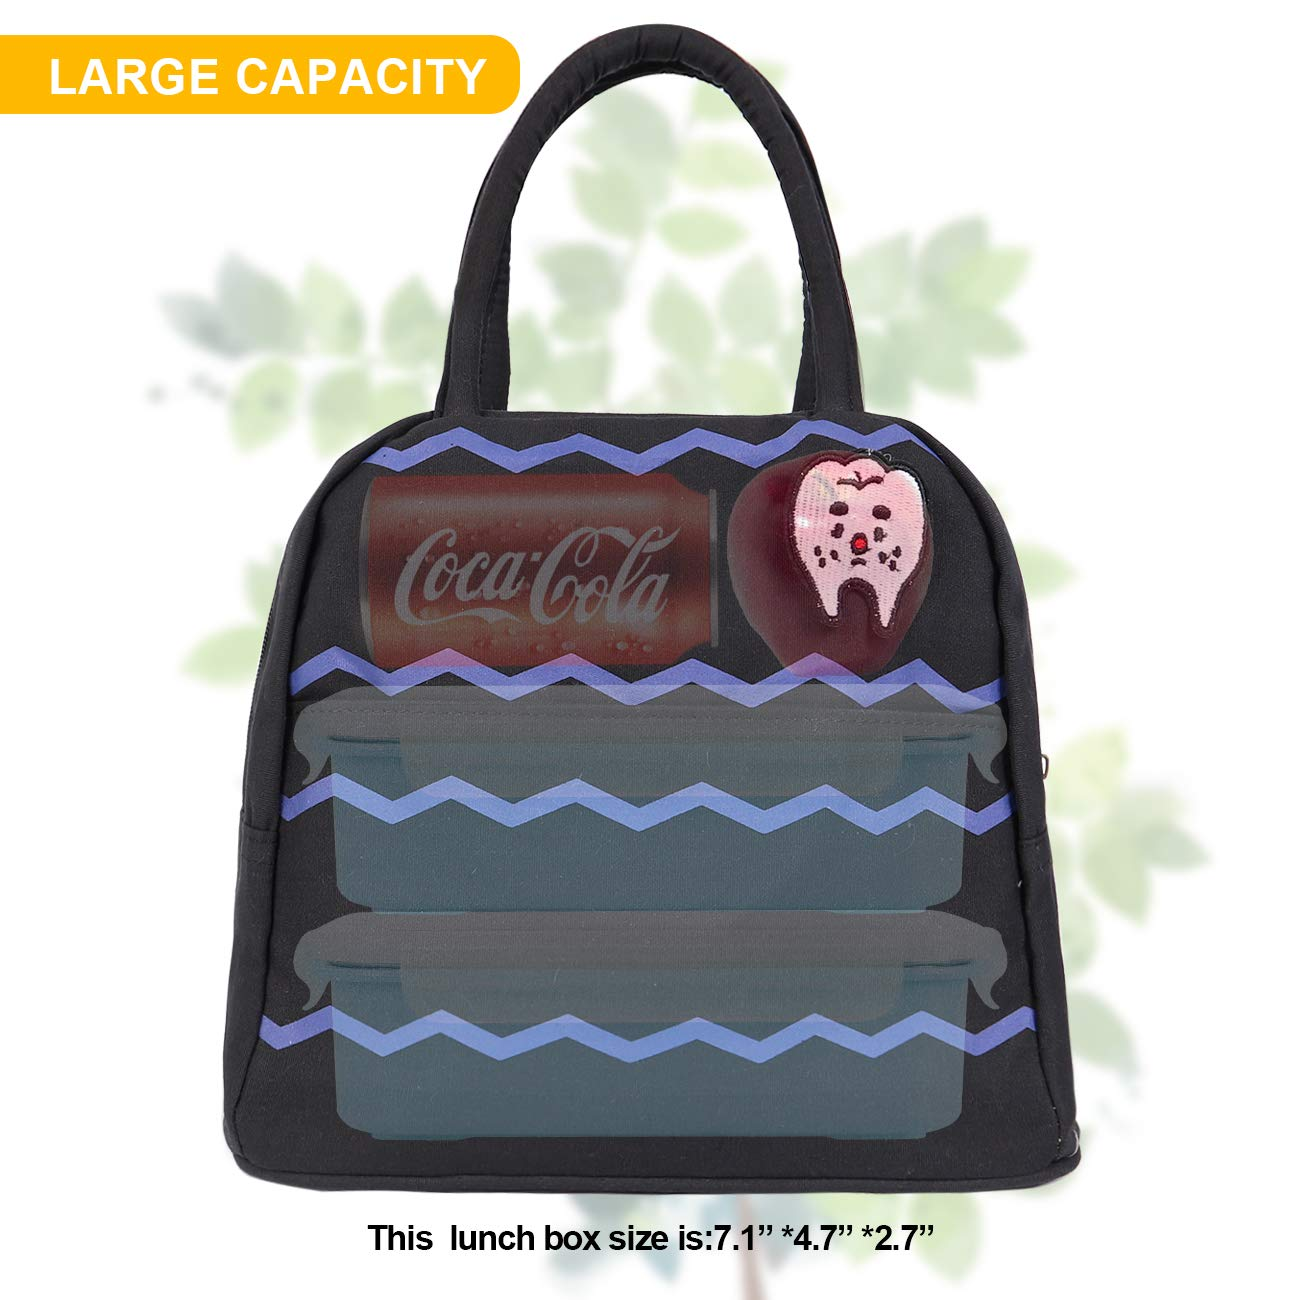 Camping,black cookies HOMESPON Reusable Lunch Bags Printed Canvas Bag Grocery Bag Handbag Insulated Lunch Tote For Women Work Students,Adults To School Shopping Kids